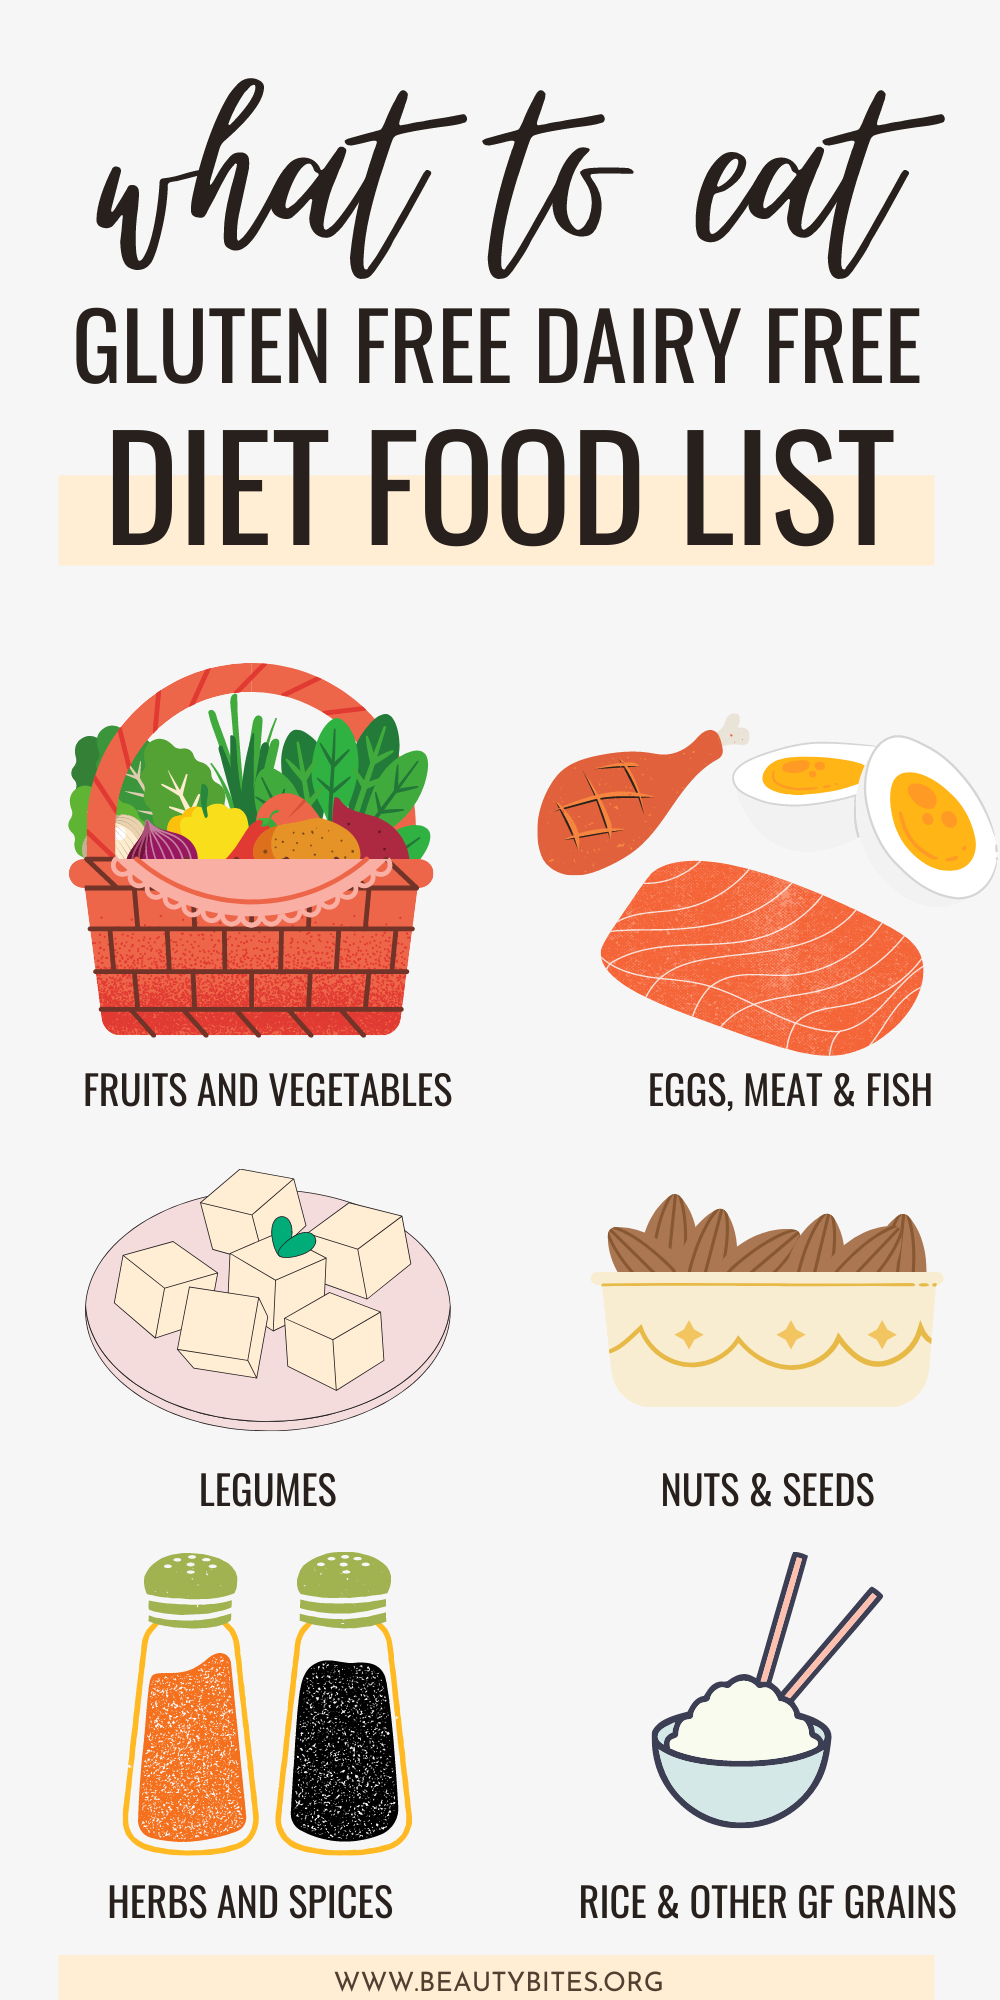 a dairy free gluten free grocery list that you can use when grocery shopping on a gluten free dairy free diet to cook delicious and healthy gluten and dairy-free meals